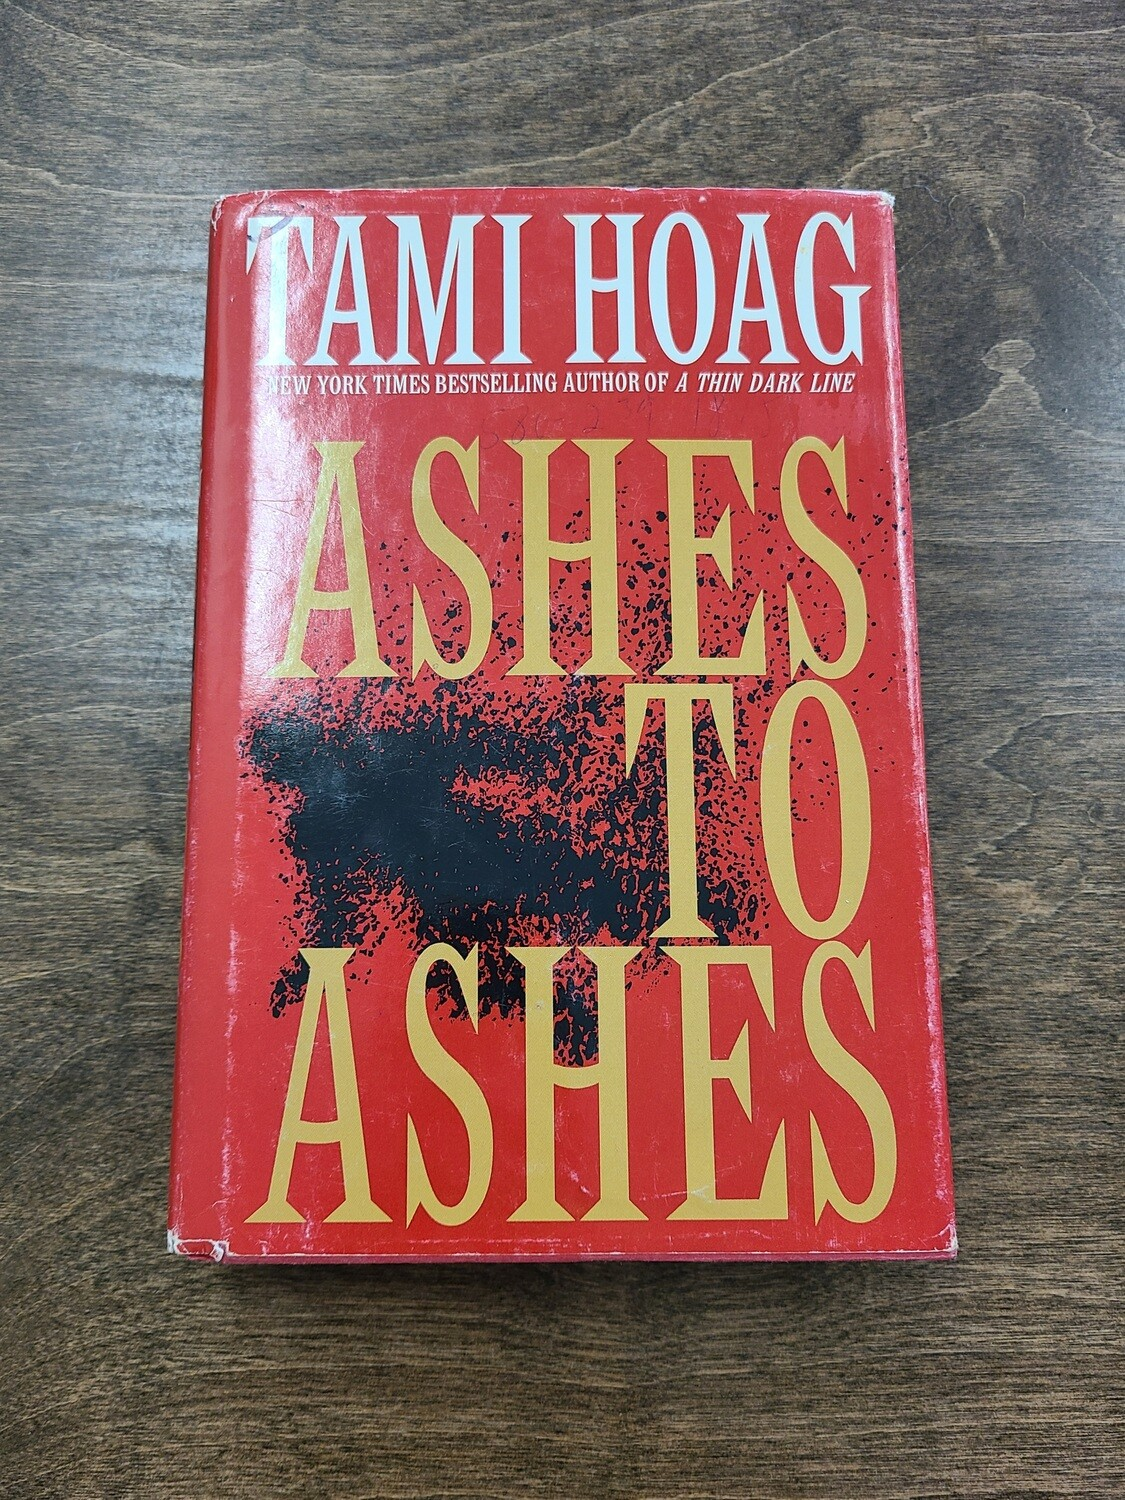 Ashes to Ashes by Tami Hoag - Hardback